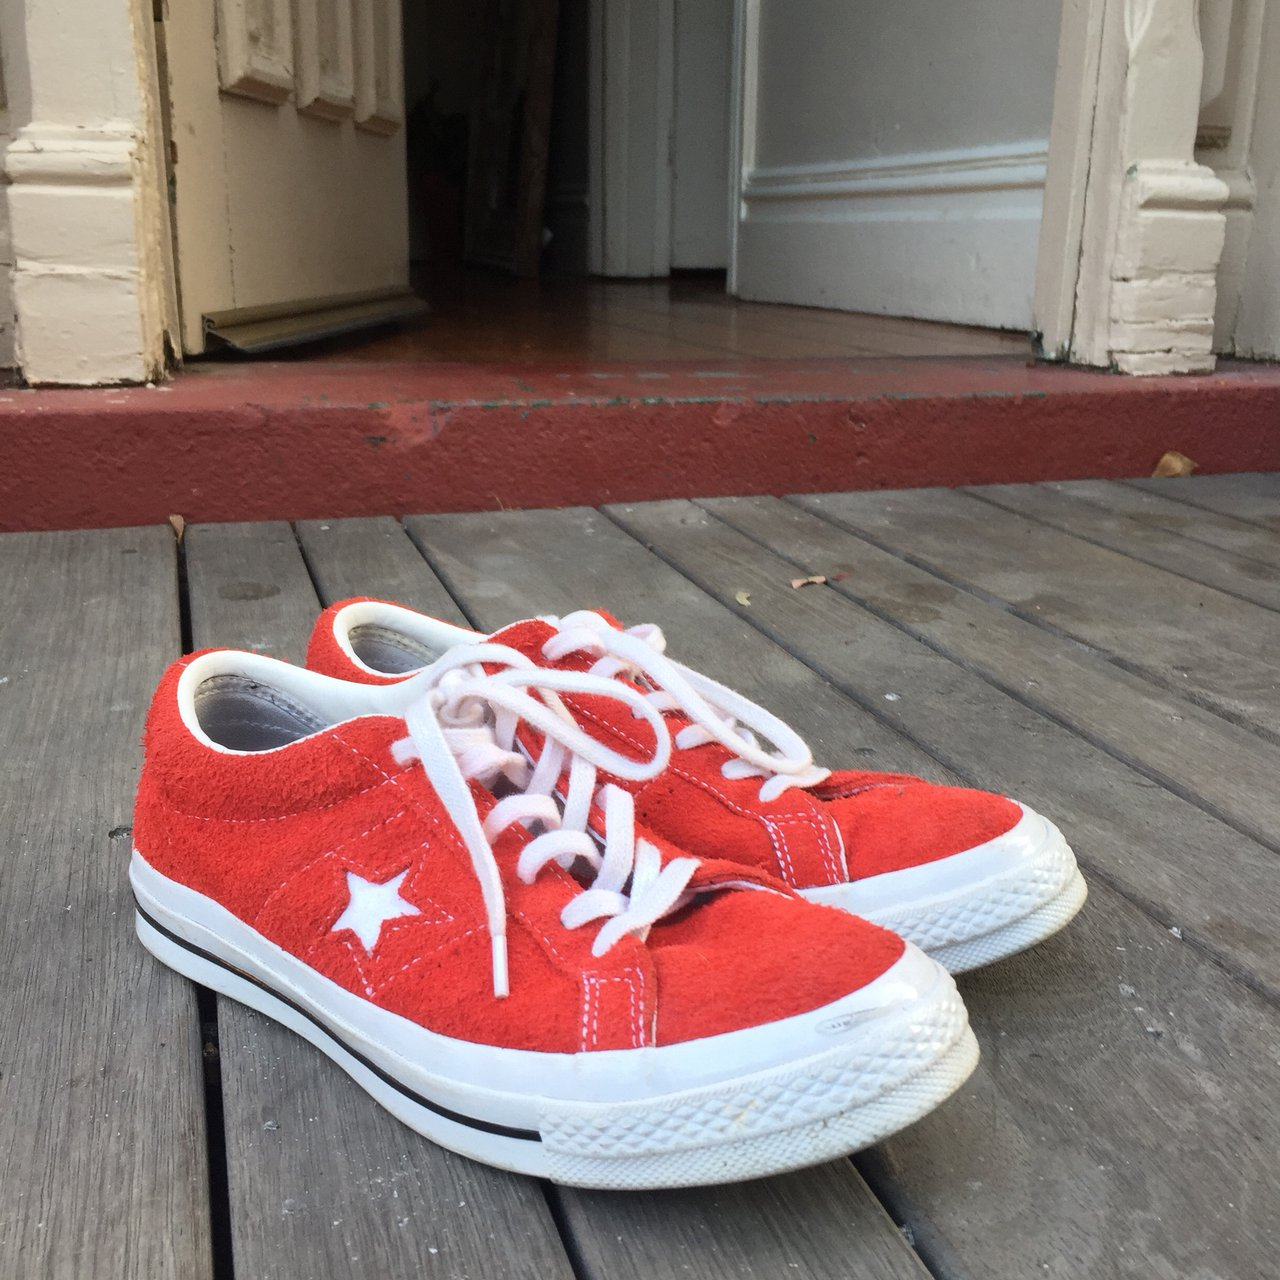 fd9f98d94b1712 Converse One Star Premium Suede Low Top in Red In V Good me - Depop